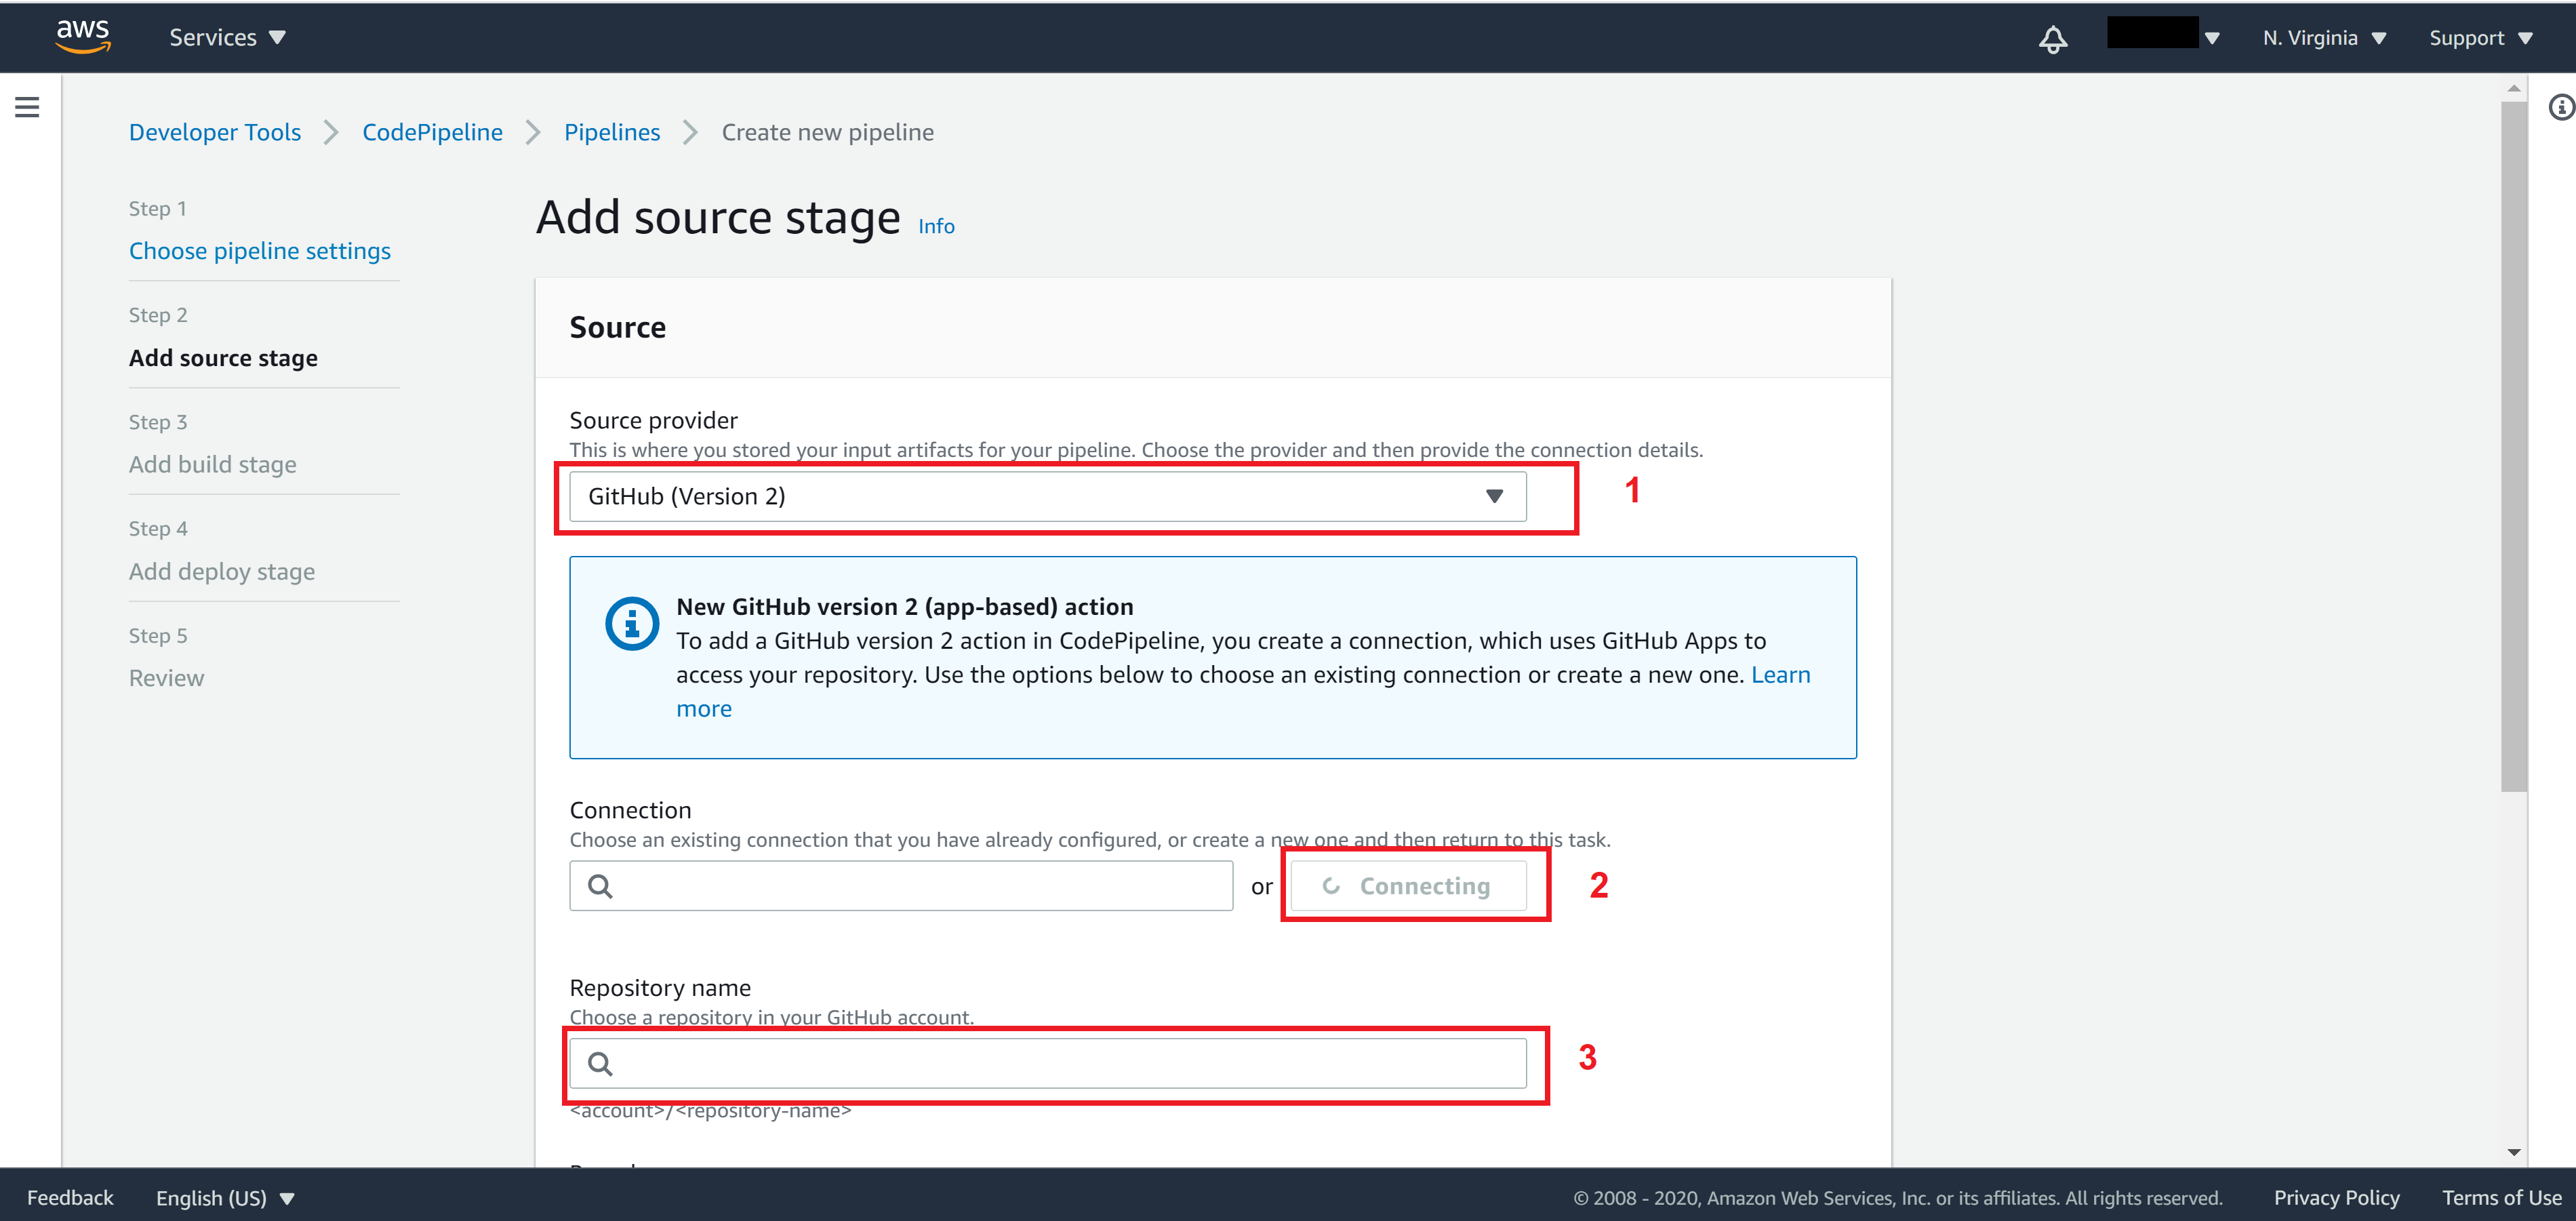 Add source stage